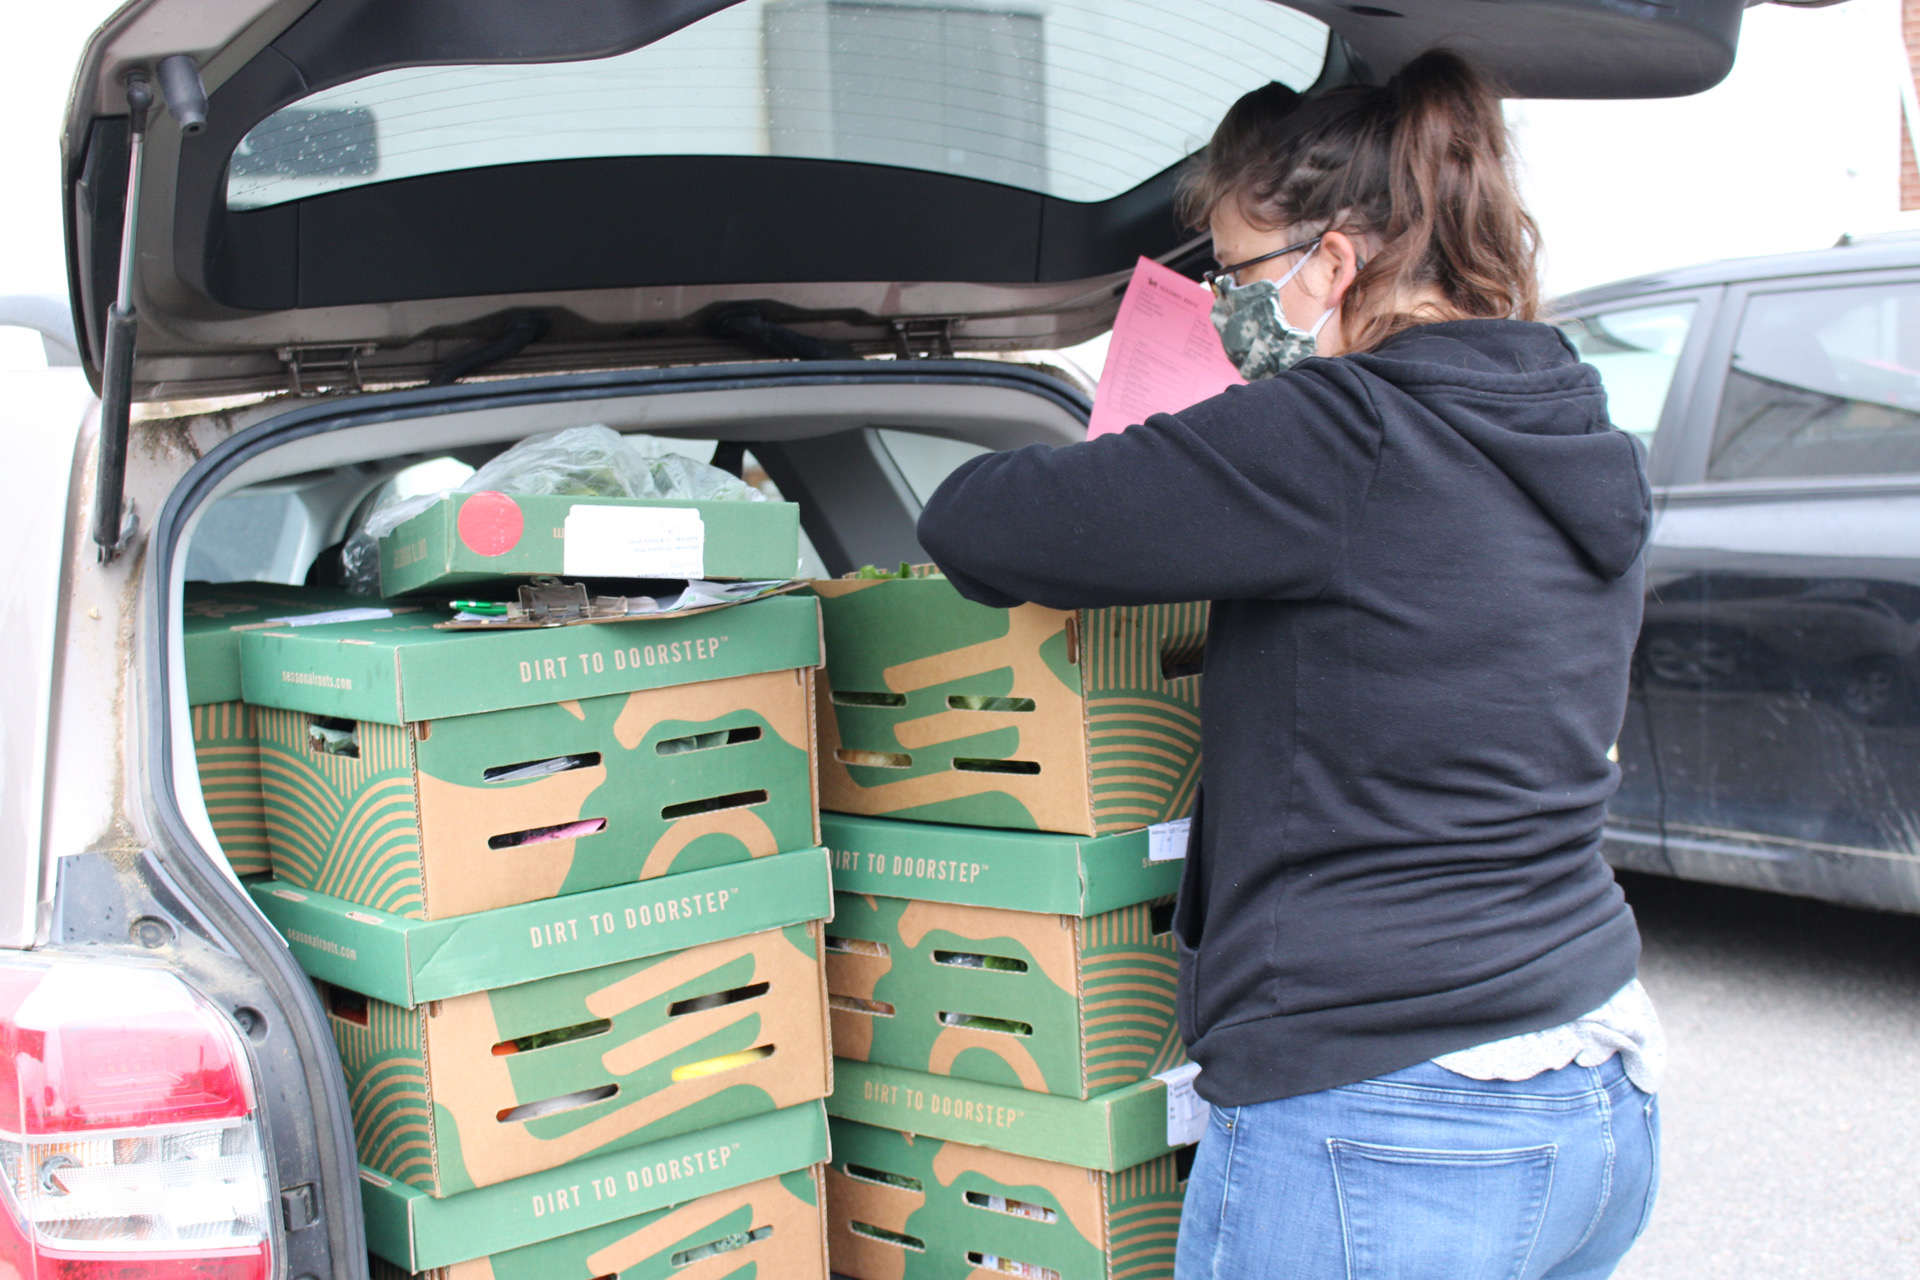 Services That Deliver Produce To Your Door In Hot Demand